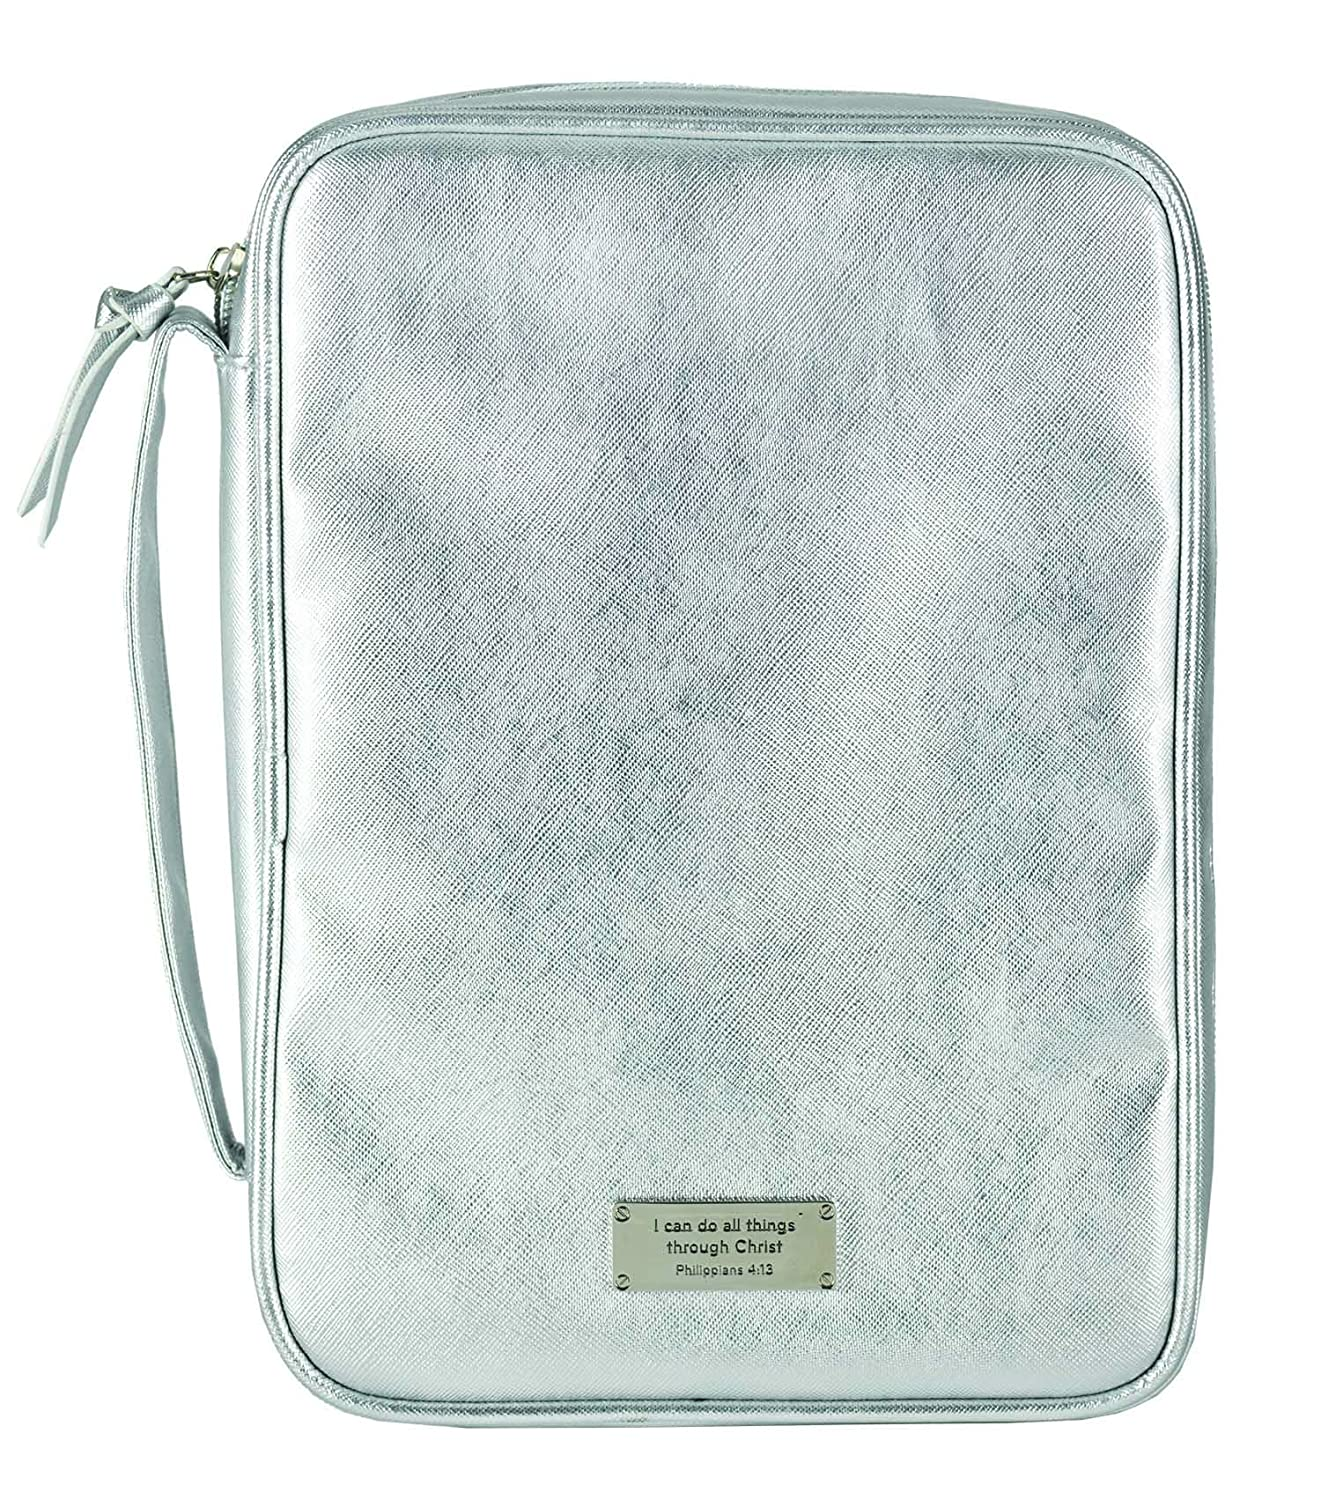 I Can Do All Things Silver Tone Metallic Extra Large Bible Cover Case with Handle Dicksons SG/_B0779DMR57/_US